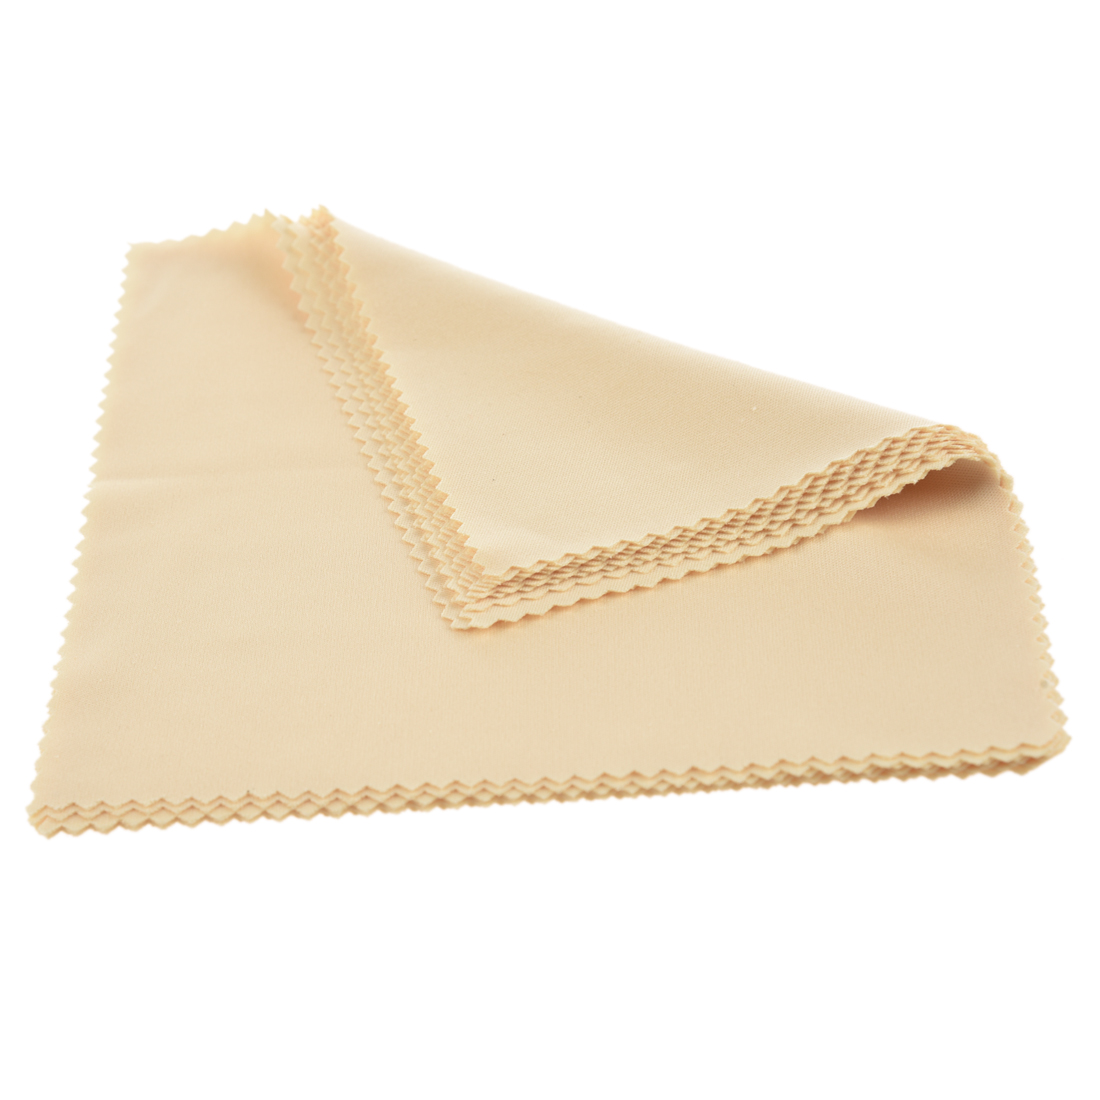 Microfiber Cloth Manufacturers Uk: 10X Microfibre Cleaning Cloth For Spectacles/Camera Lenses